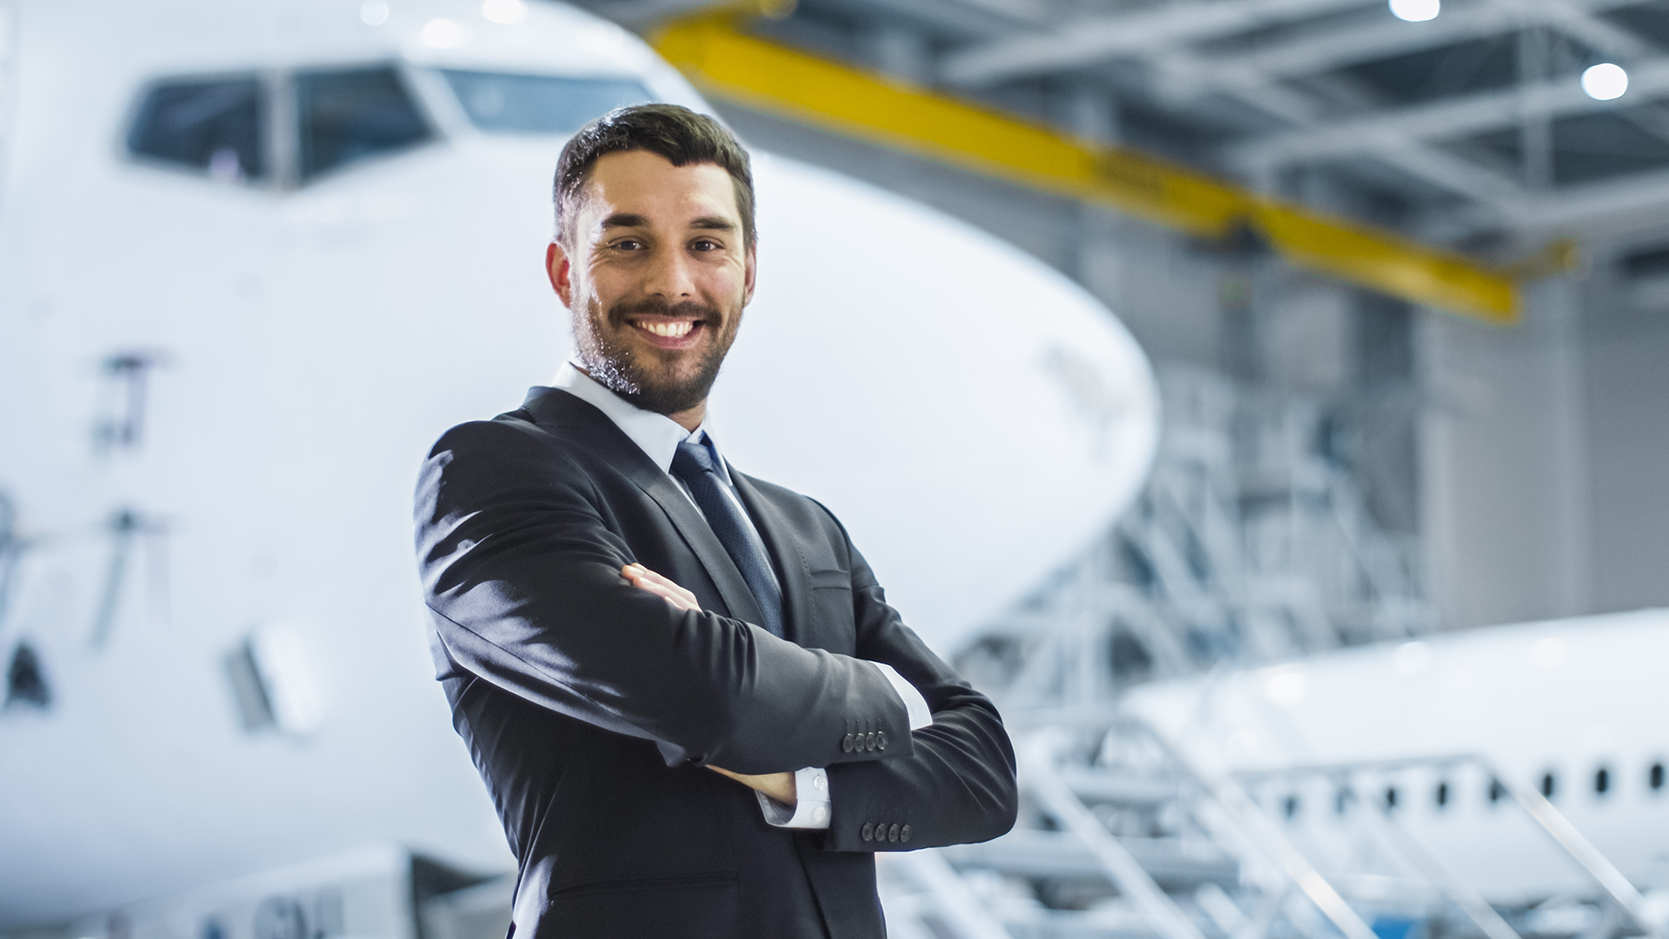 Business Owner stands next to aircraft in hangar